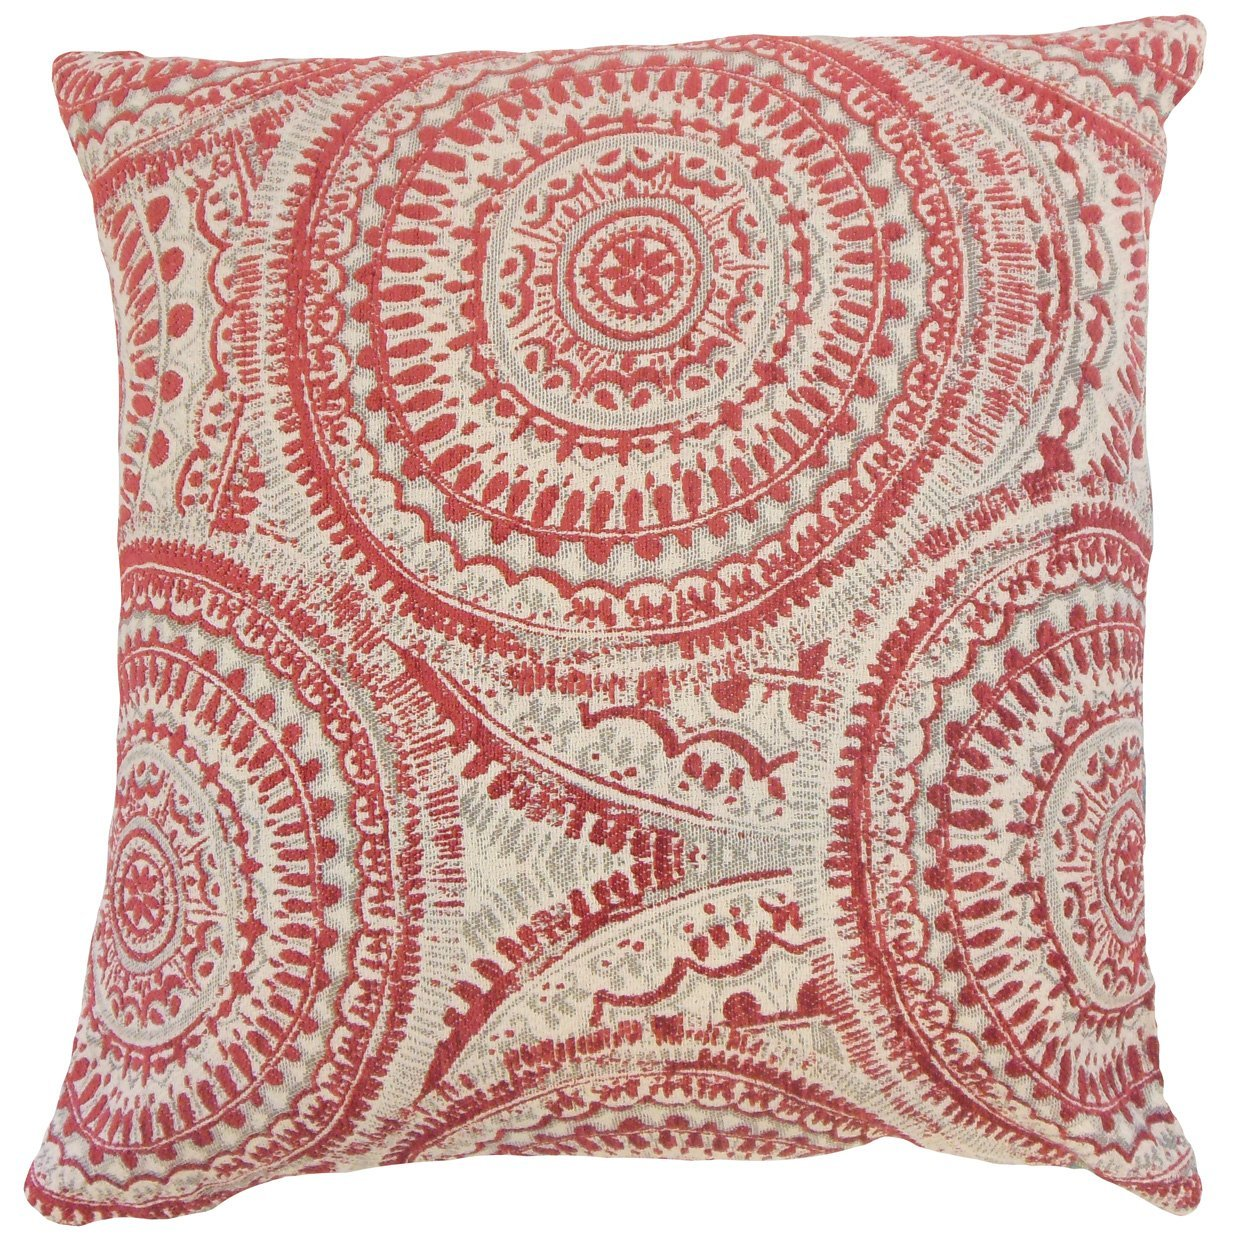 The Pillow Collection Chione Graphic Bedding Sham Cherry Standard//20 x 26